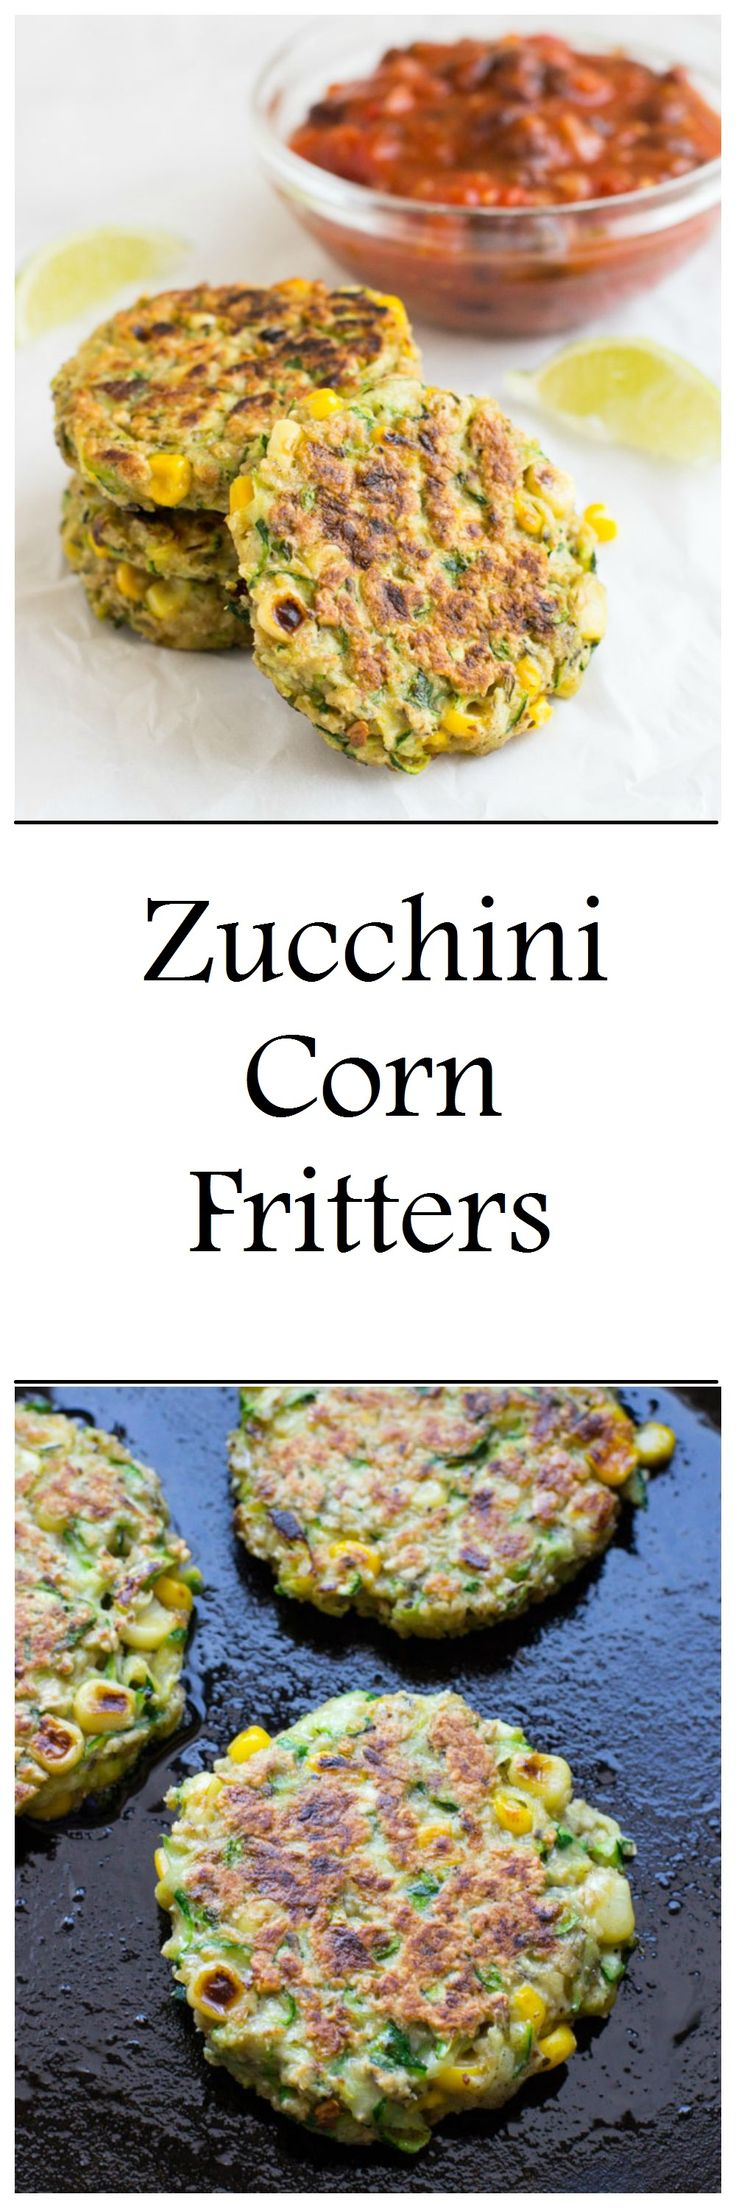 Zucchini Corn Fritters with Black Bean Salsa are a healthy and easy vegetarian option for dinner. They're dairy-free and can easily be made gluten-free as well! I hope you guys aren't tired of zucchini recipes yet because I've got one more for you! Well, actually I take that back. I've got six more for you …